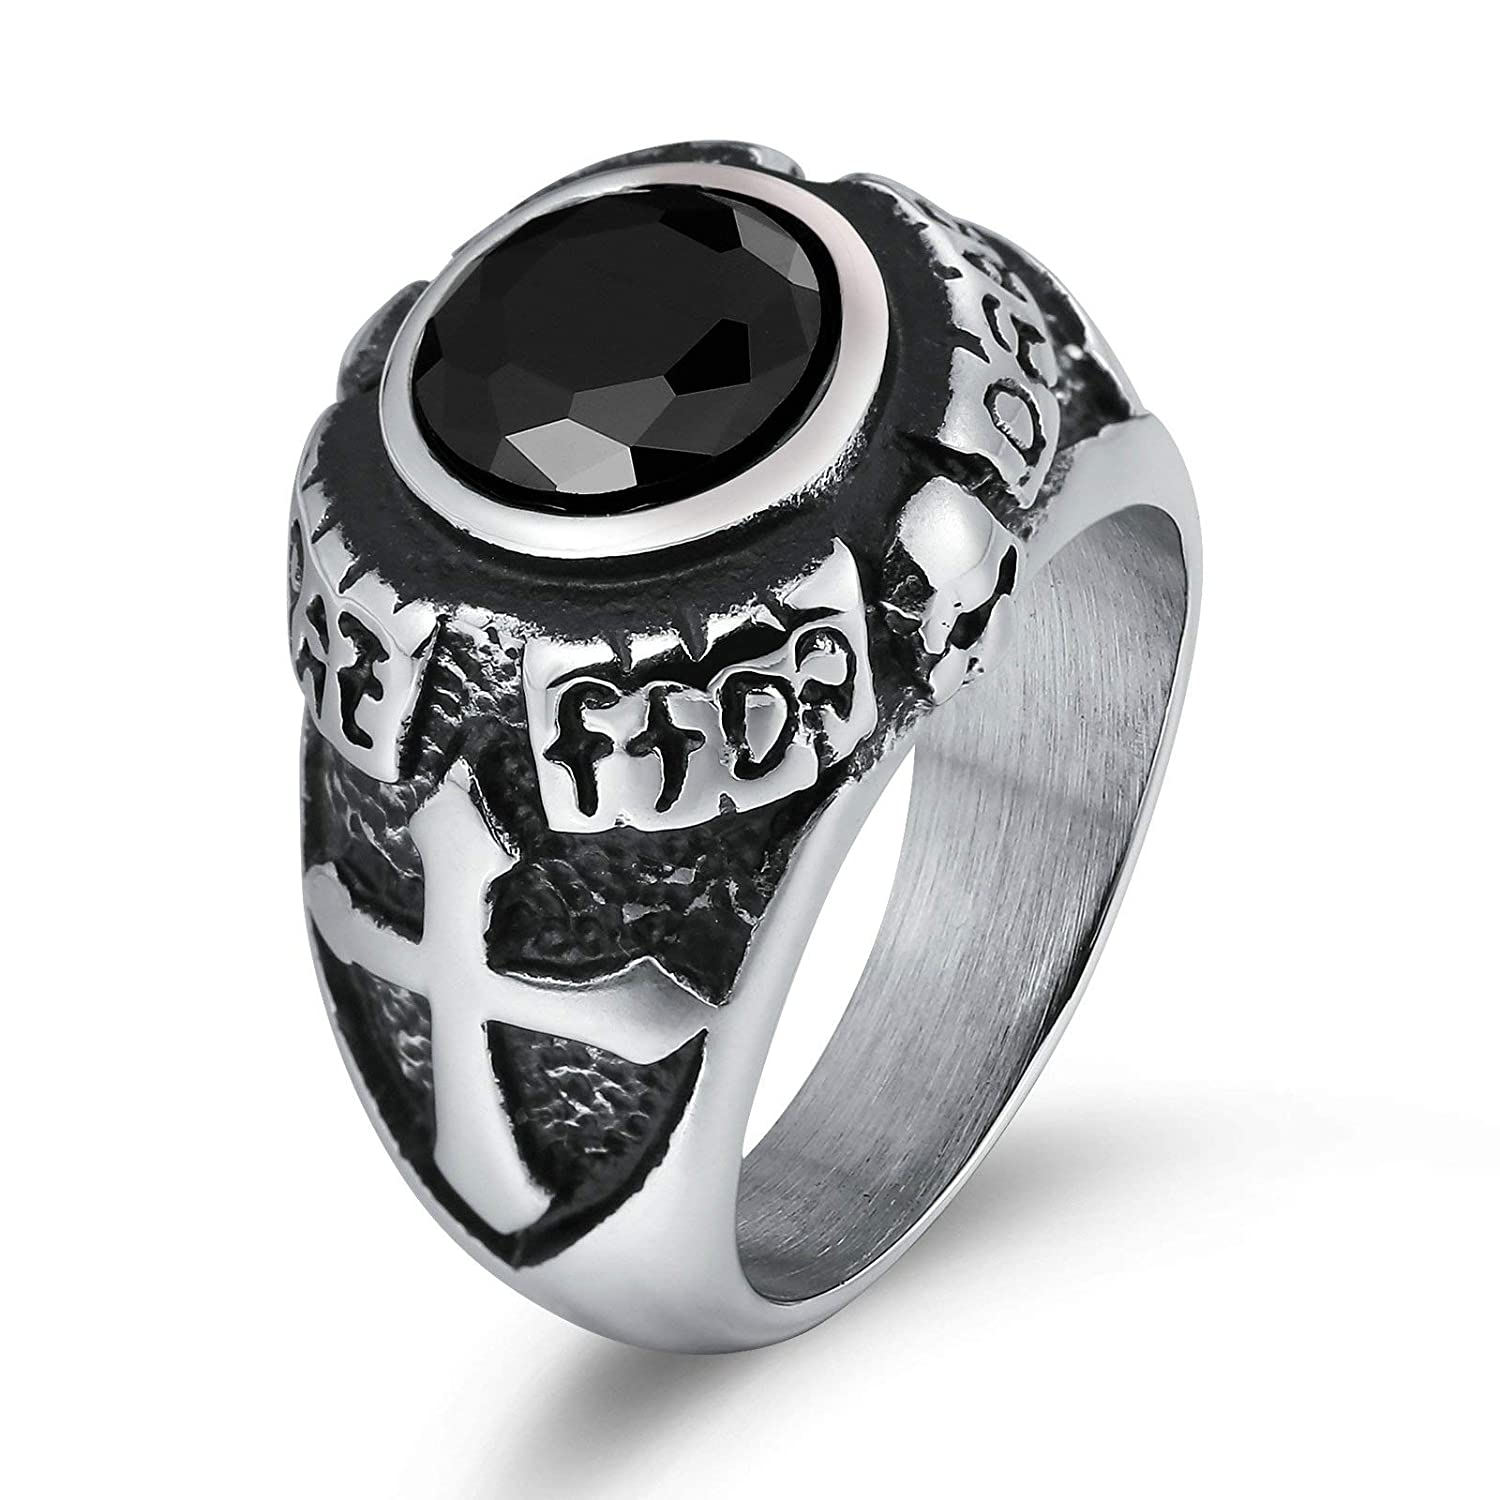 Aooaz Punk Rings Gemstone Engraved Lines Nugget Shape Thumb Ring Stainless Steel Black US Size 10